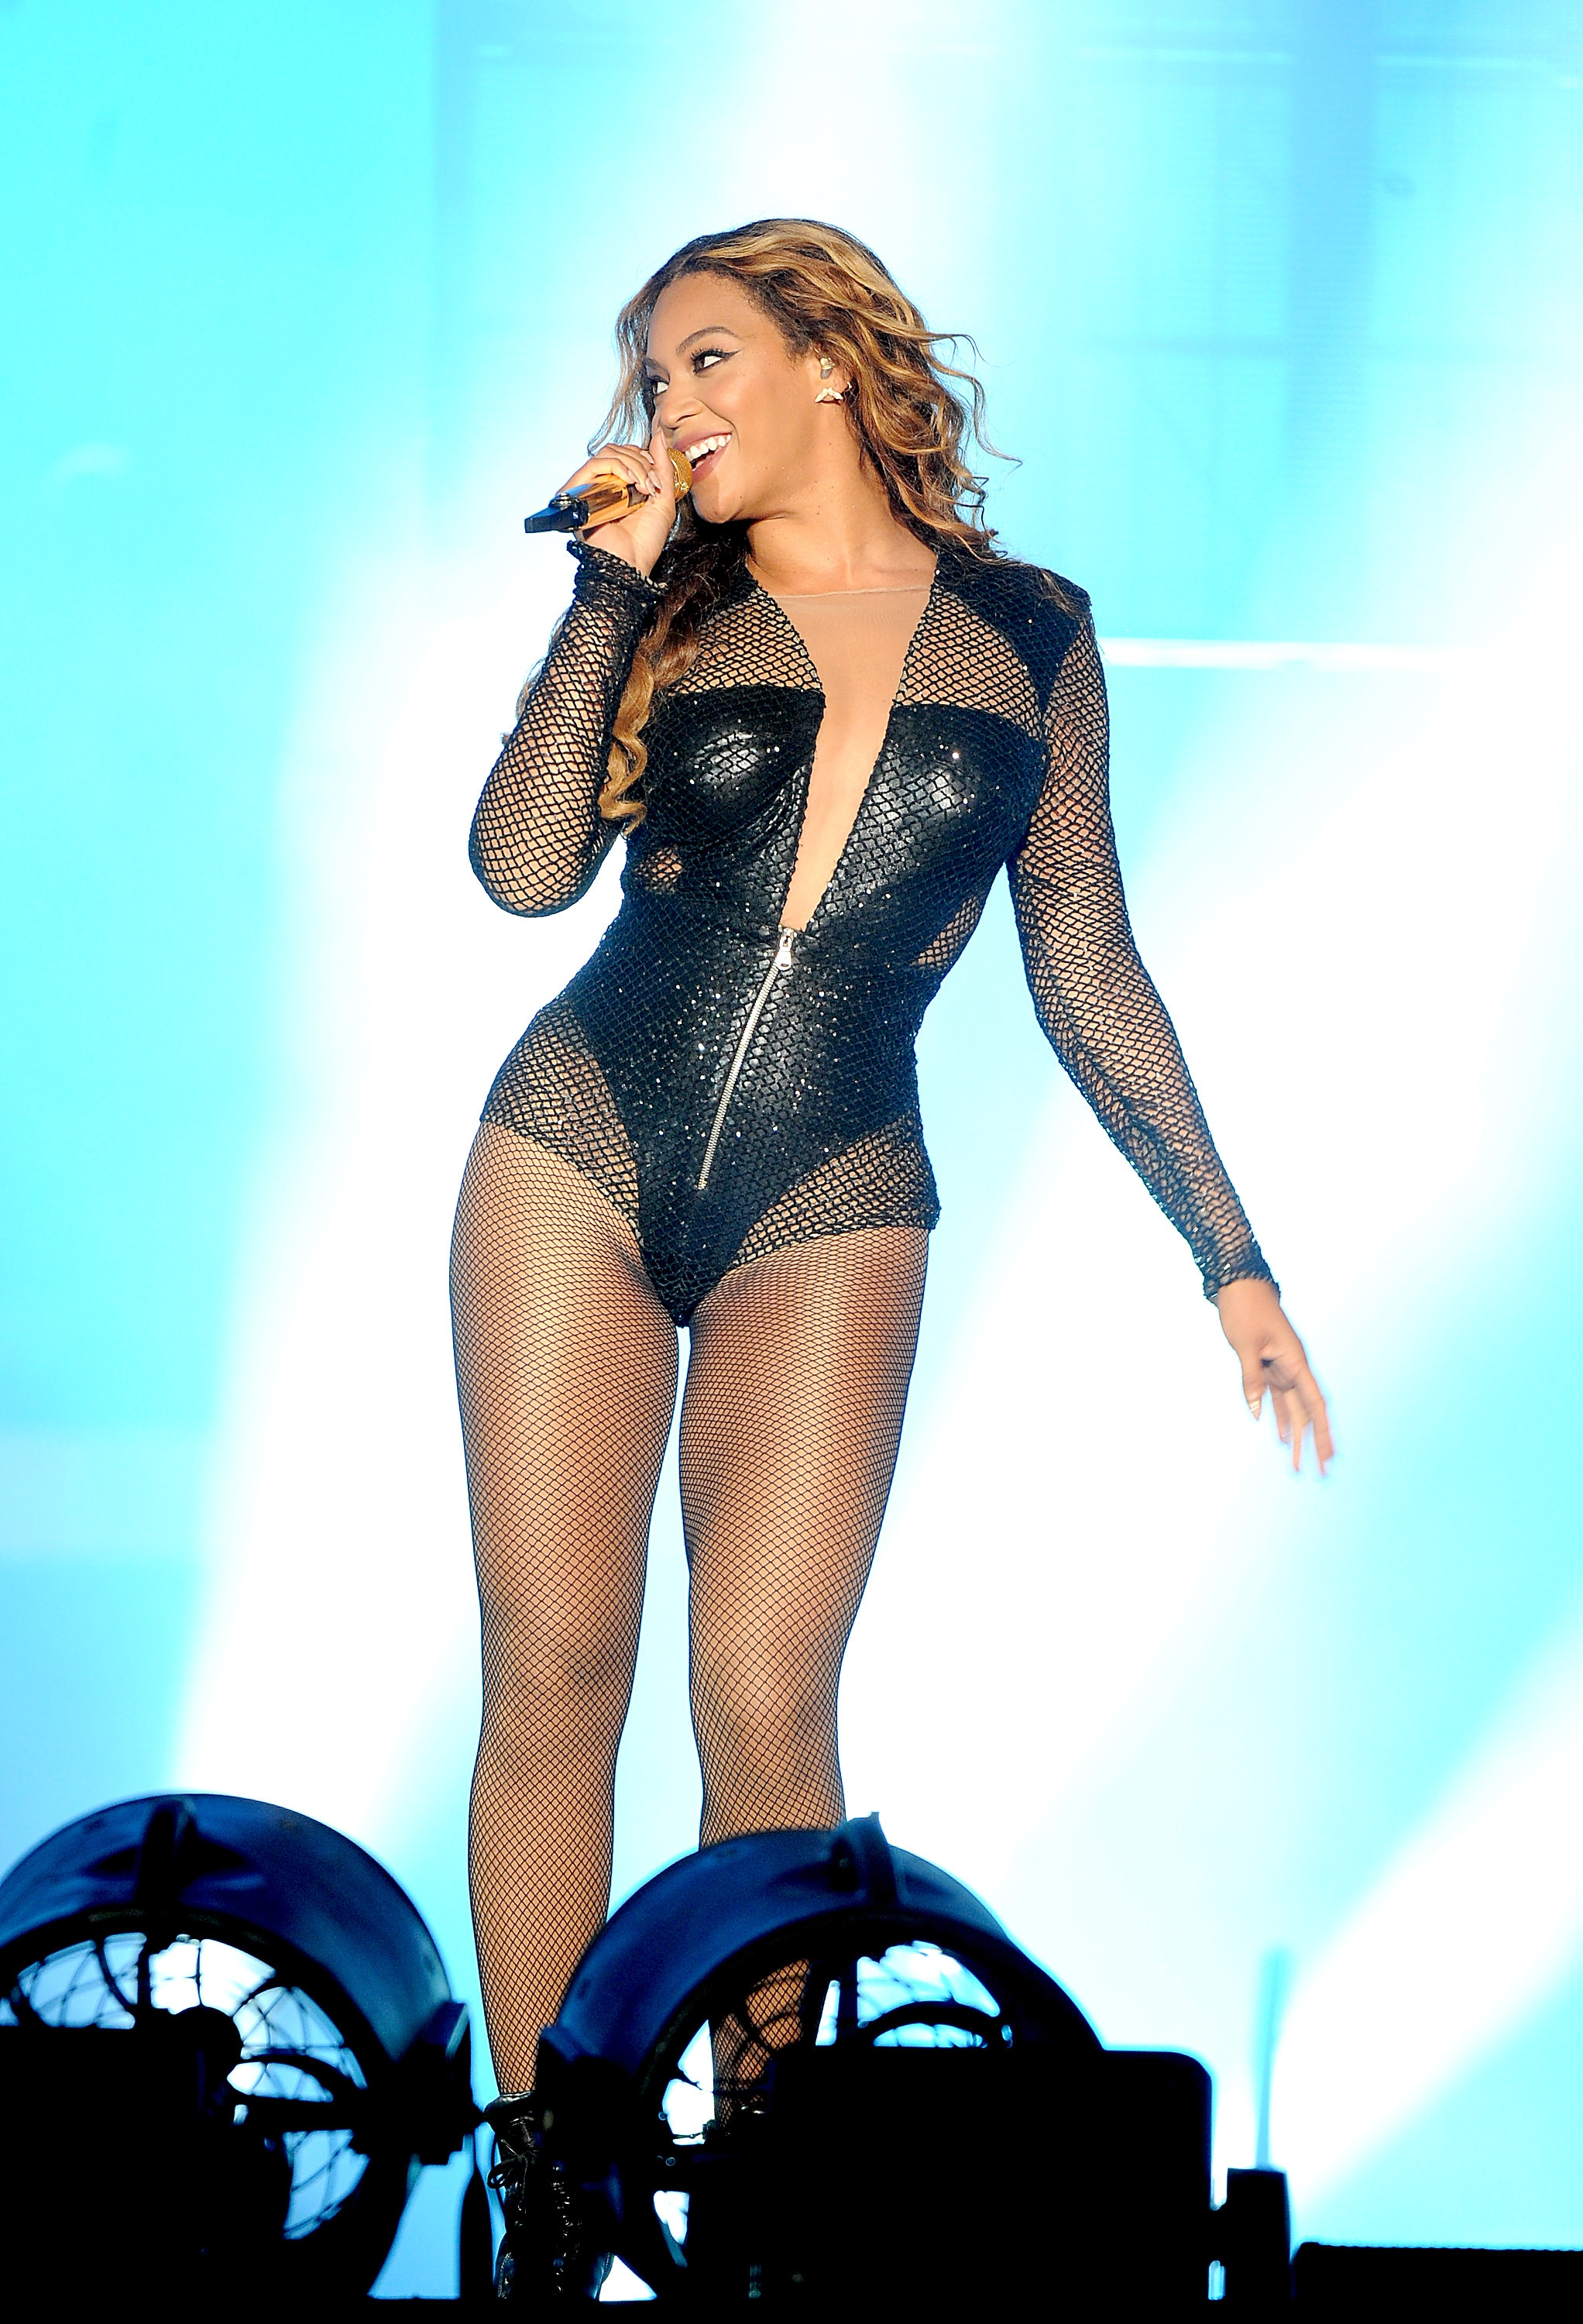 Beyoncé will be among the performers at the MTV Video Music Awards on Aug. 24.